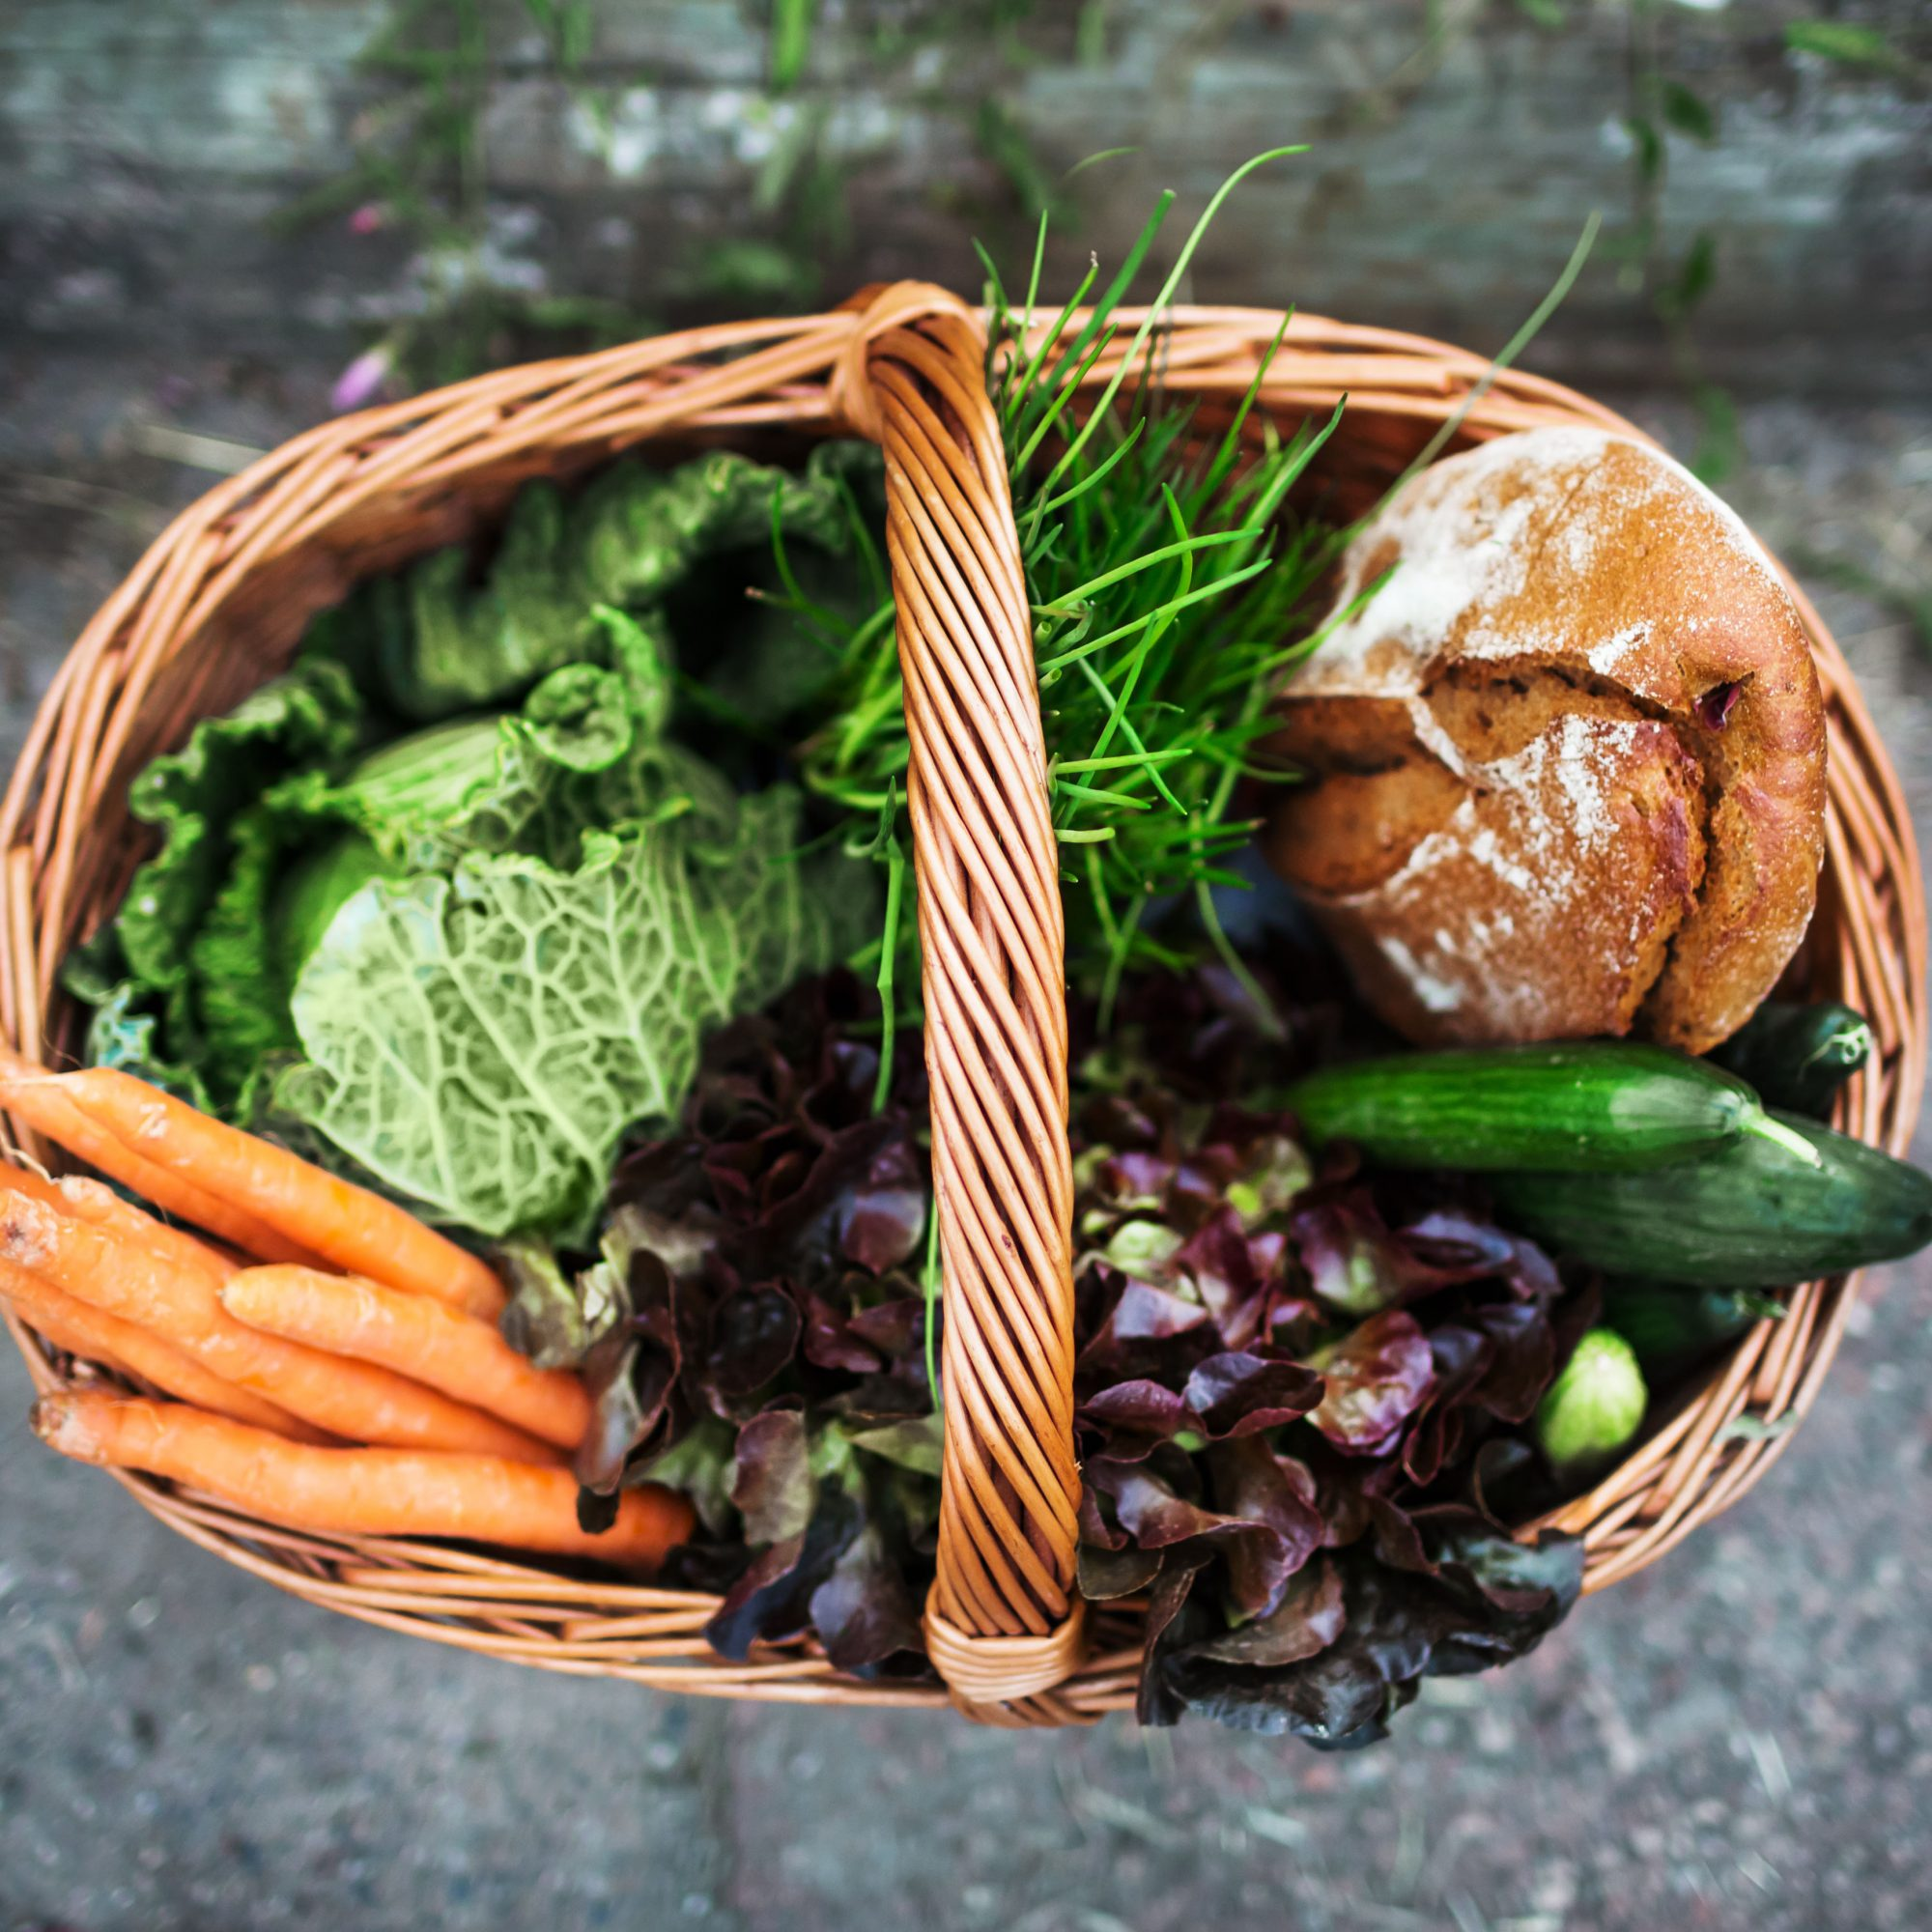 Basket_Of_Fresh_Produce_And_Bread